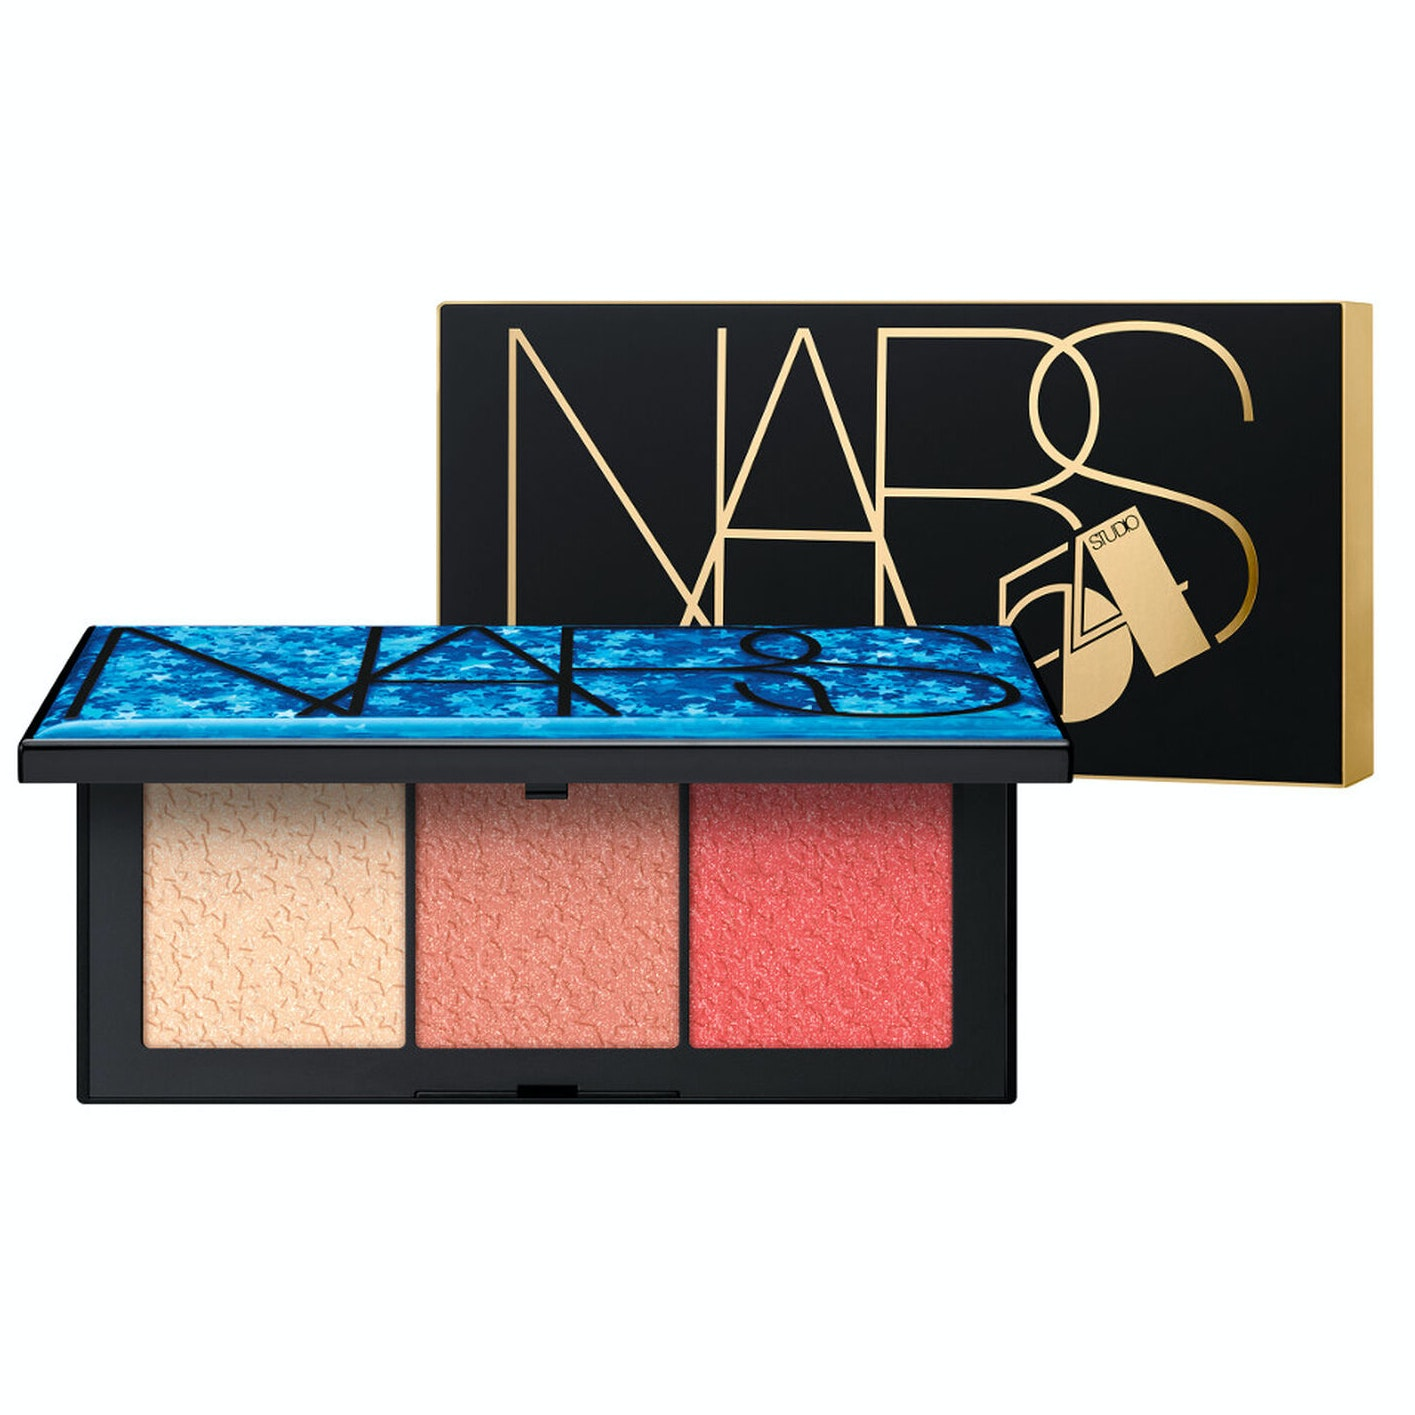 NARS Studio 54 Hustle Cheek Palette